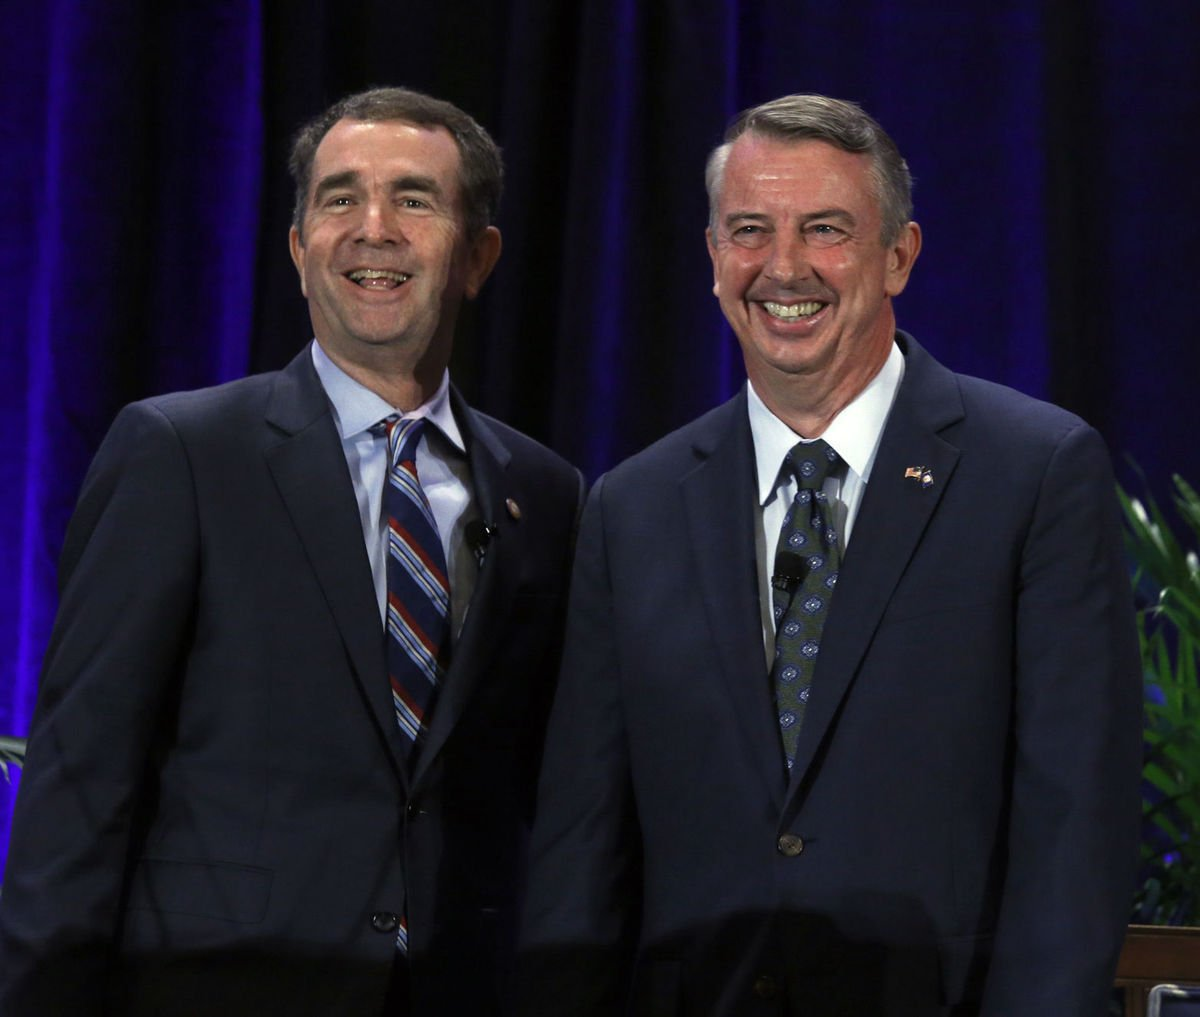 Northam continues to lead over Gillespie